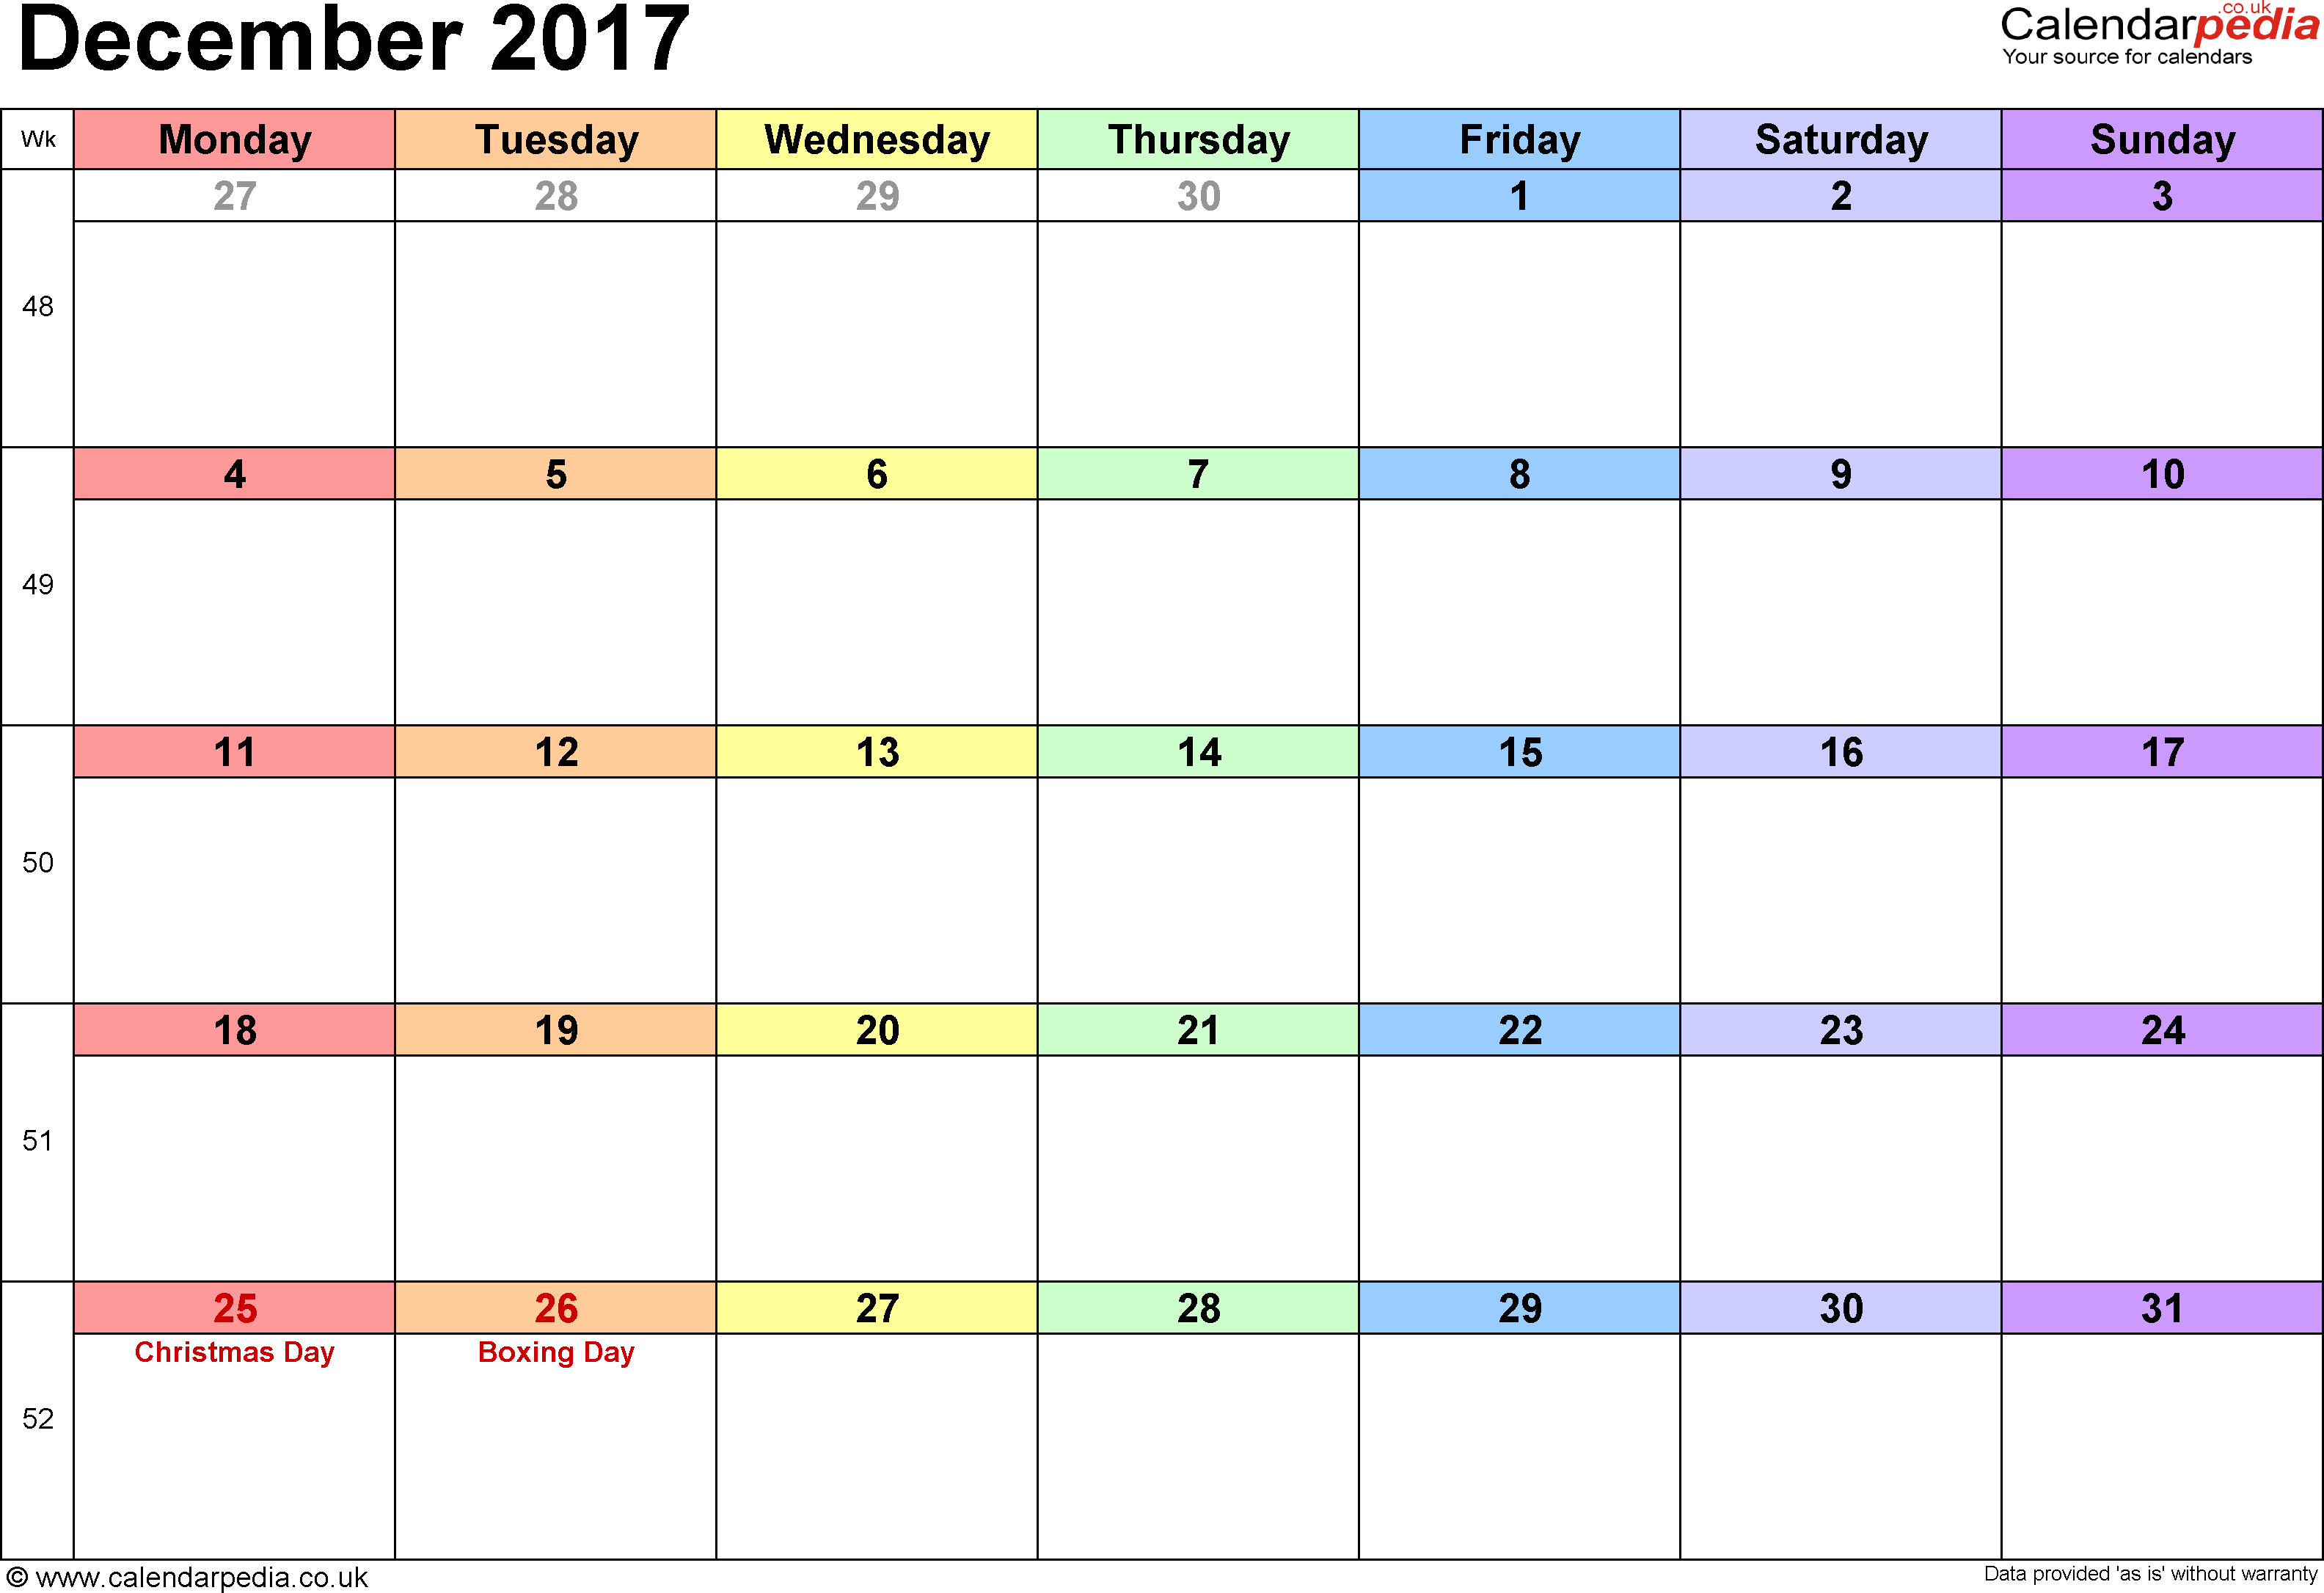 Calendar December 2017 UK, Bank Holidays, Excel/PDF/Word Templates